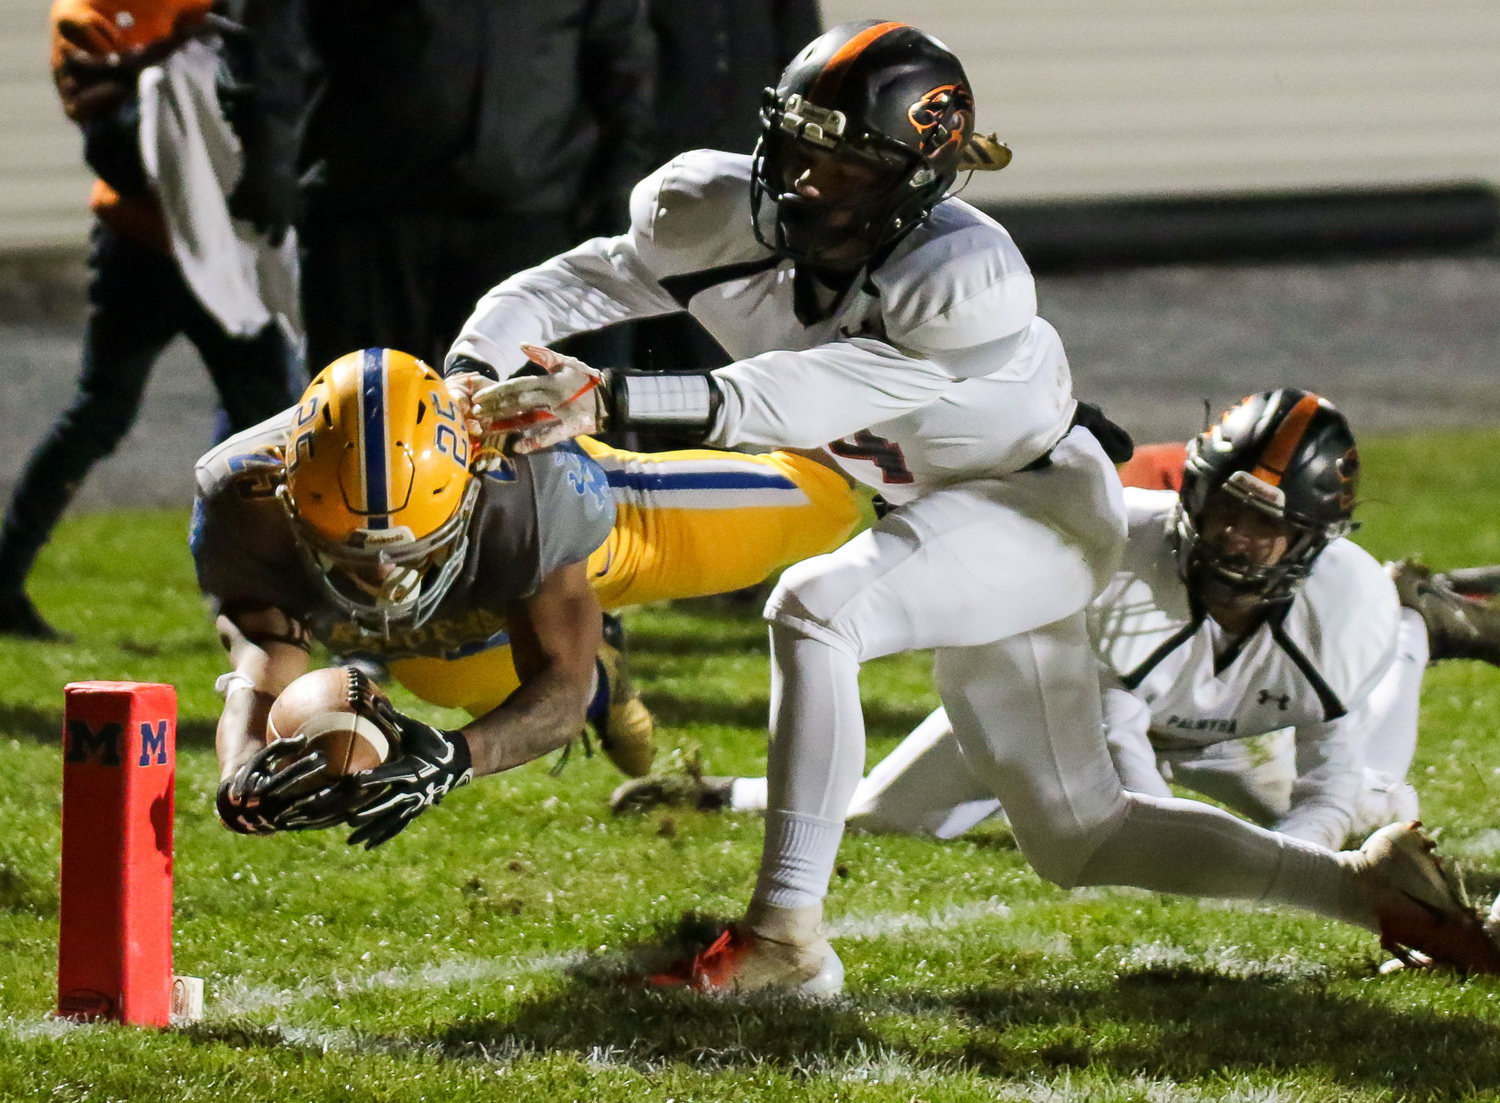 Jose Lopez dives for the end zone Oct. 26 against Palmyra at War Memorial Field.